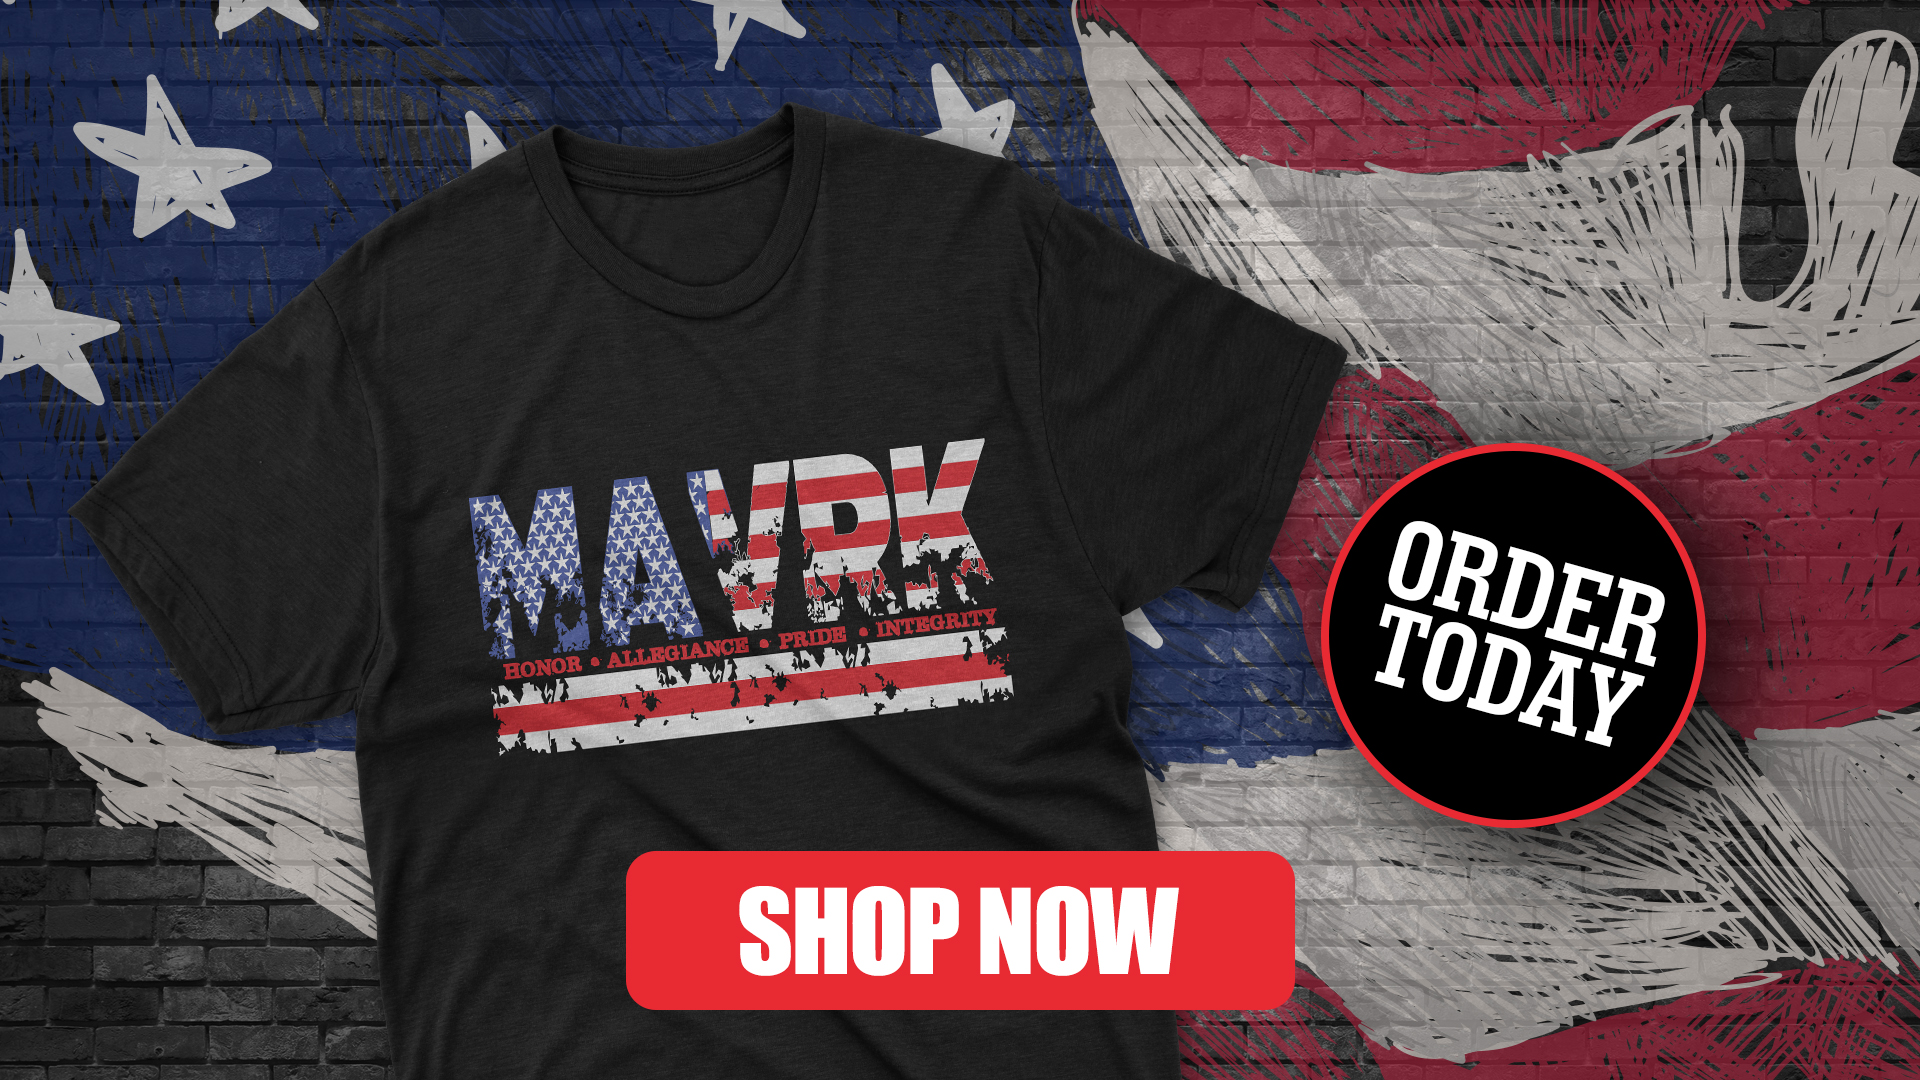 16x9-screen-home-banner-mavrk-shirts-001a